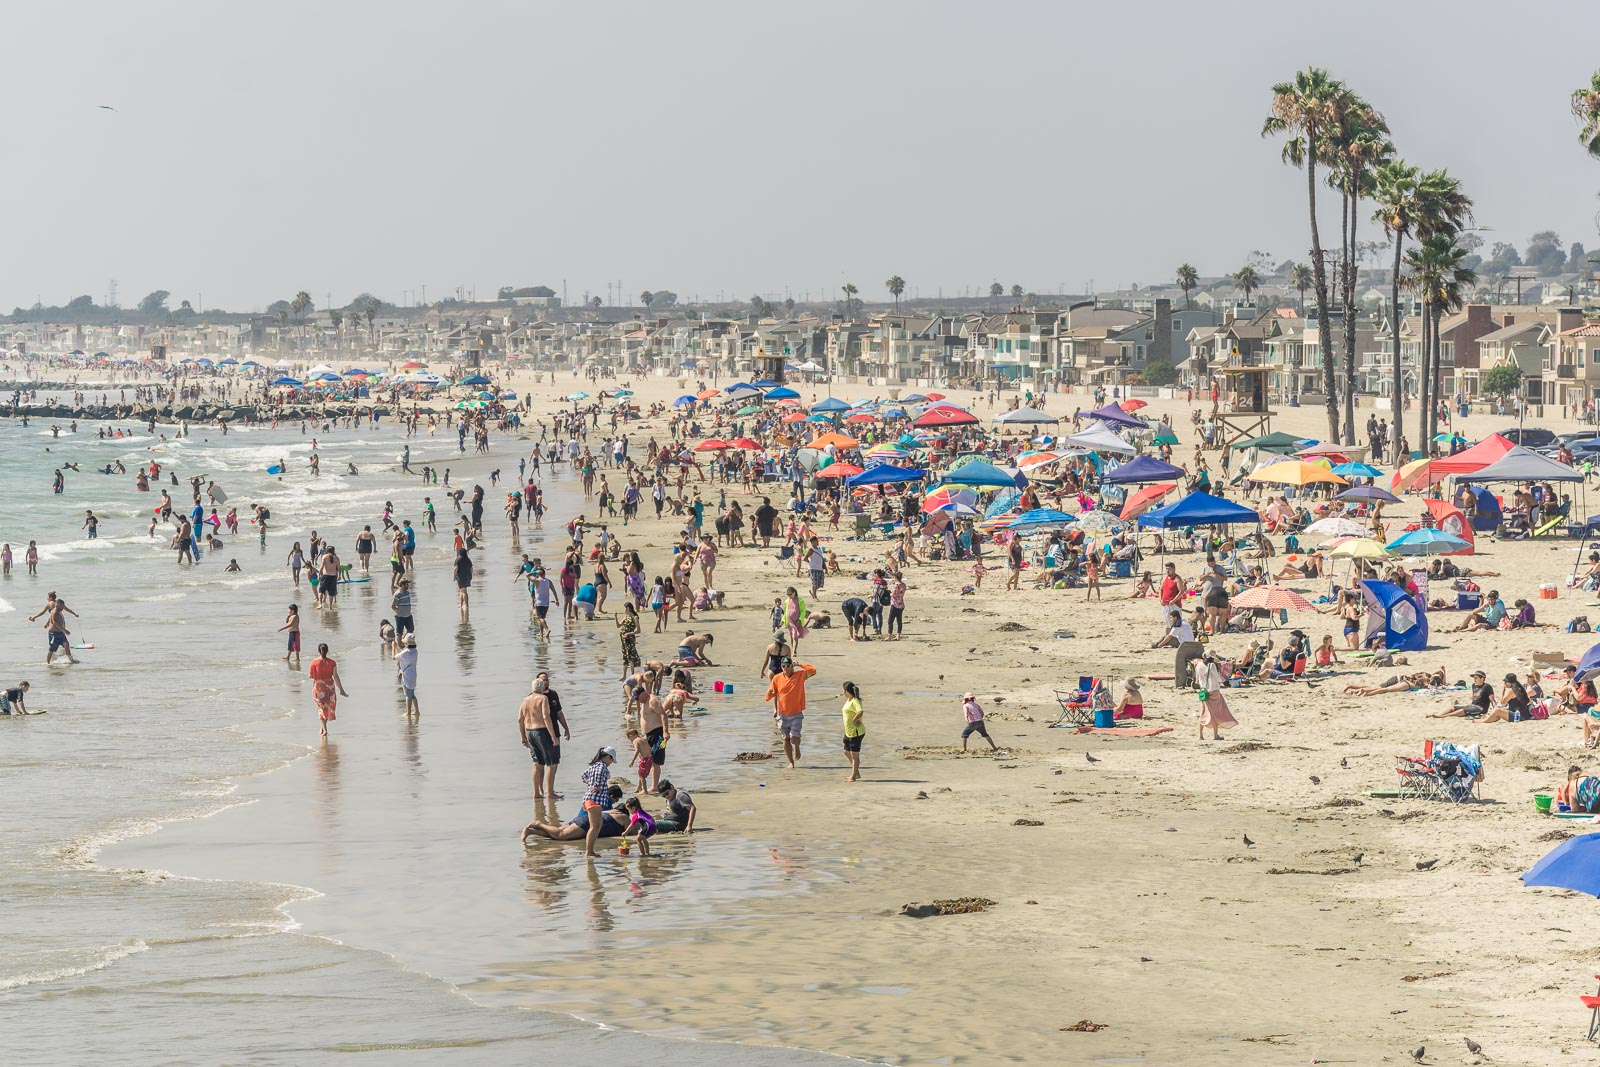 view from Newport Beach pier on a Sunny day overlooking the crowded beach of swimmers